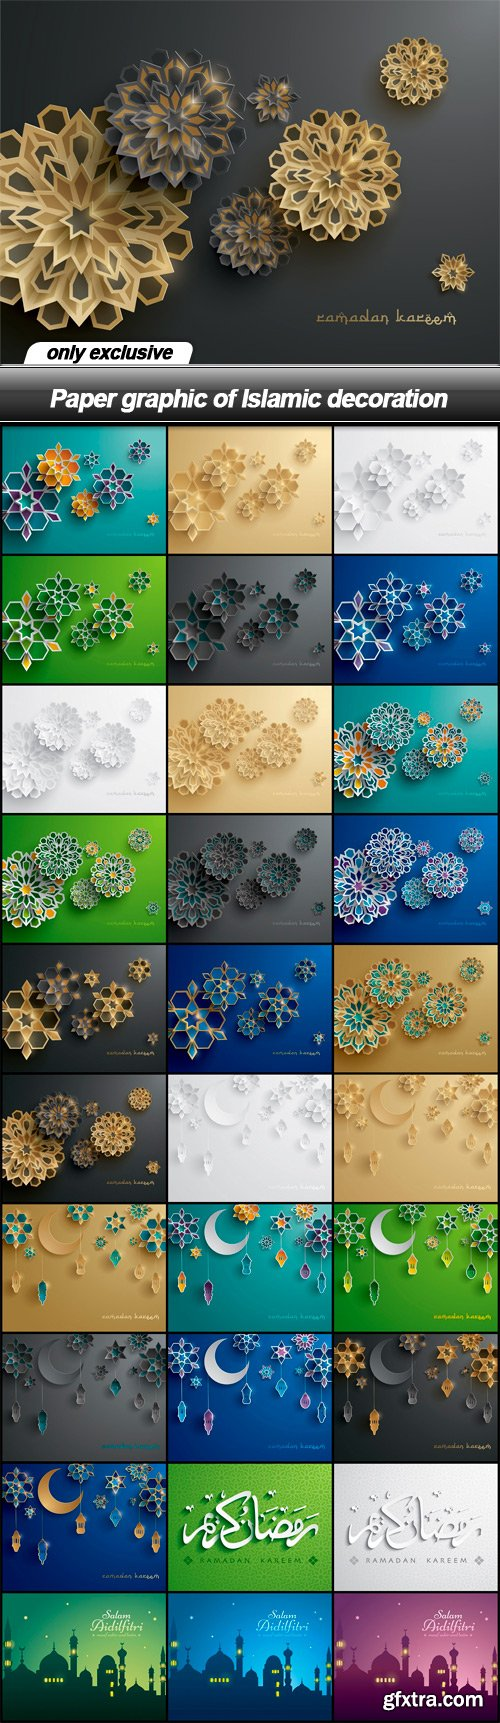 Paper graphic of Islamic decoration - 30 EPS